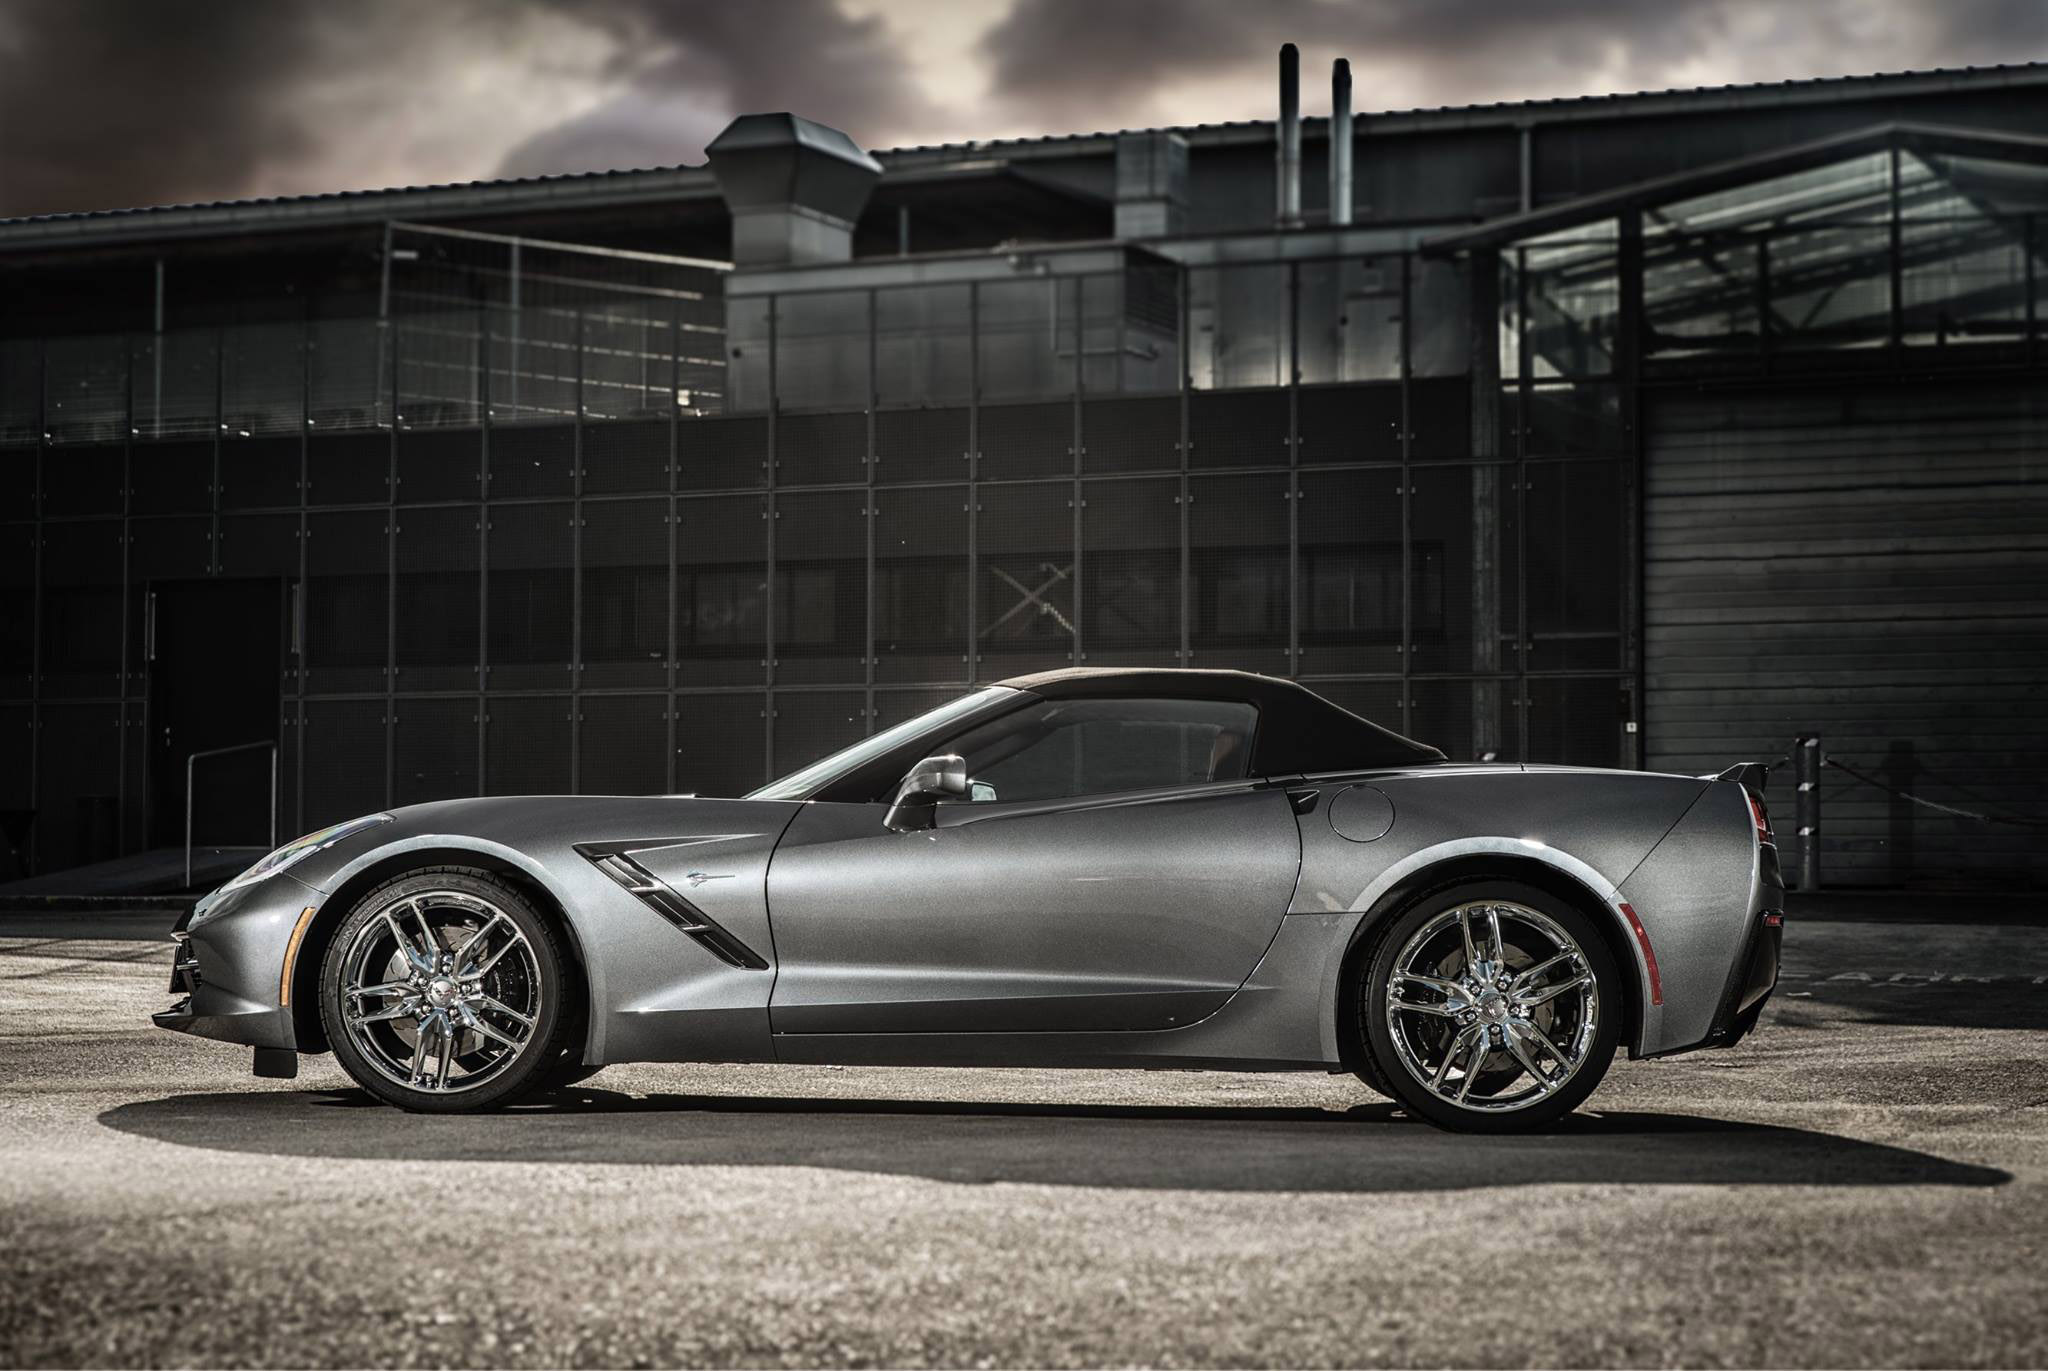 O Ct Tuning Updates Chevrolet Corvette Stingray C7 To 630hp